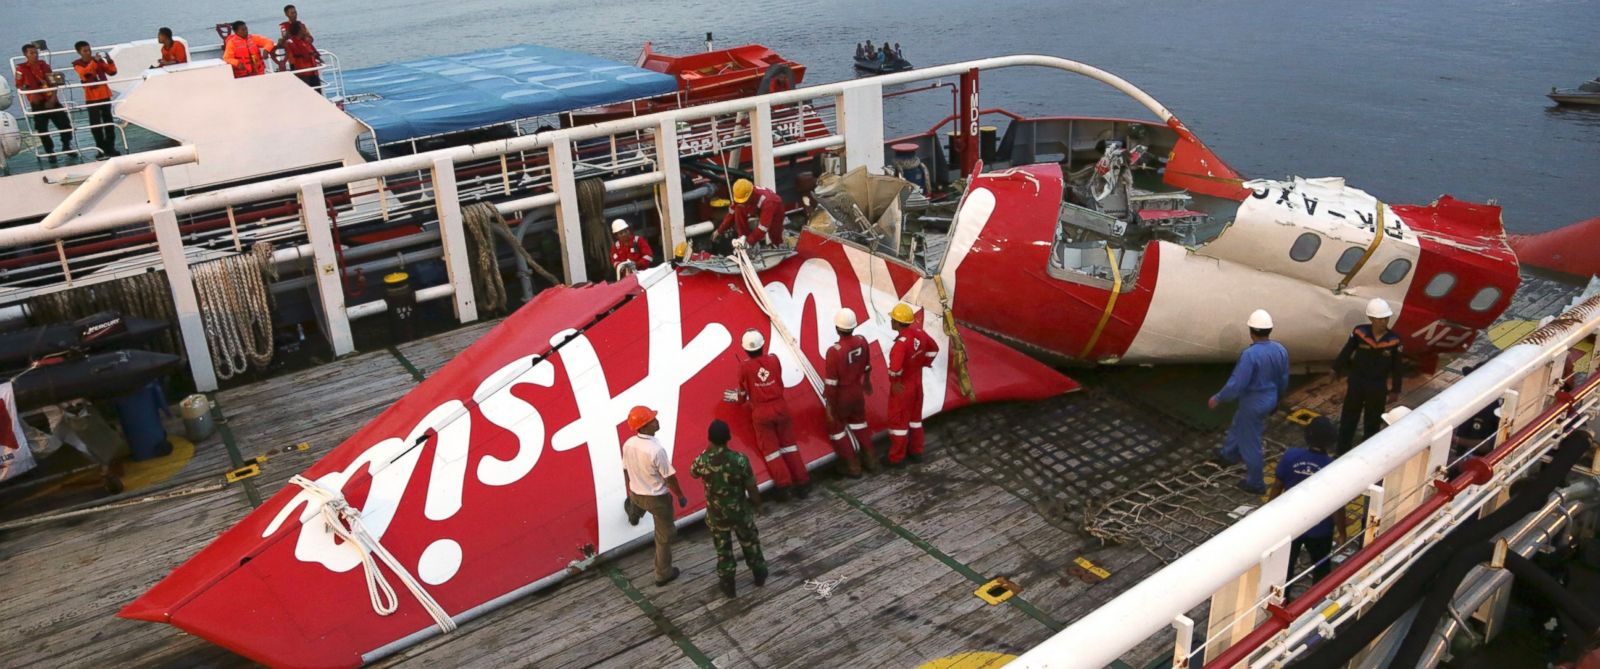 PHOTO: Crew members of Crest Onyx ship prepare to unload parts of AirAsia Flight 8501 from a ship at Kumai port in Pangkalan Bun, Sunday, Jan.11, 2015.